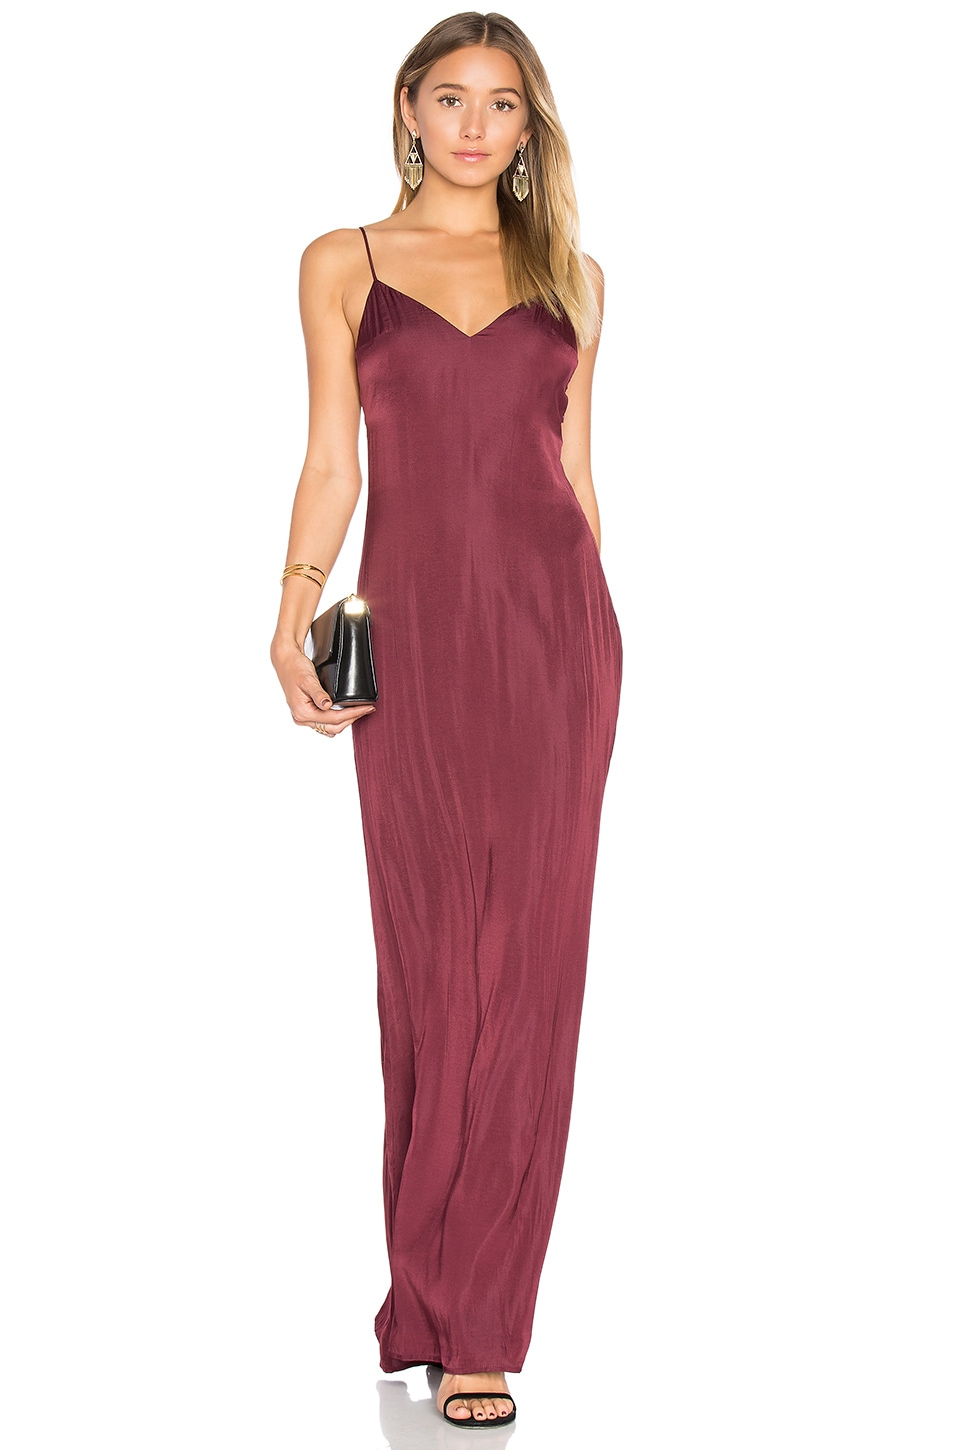 x REVOLVE The Revival Dress by Lovers + Friends